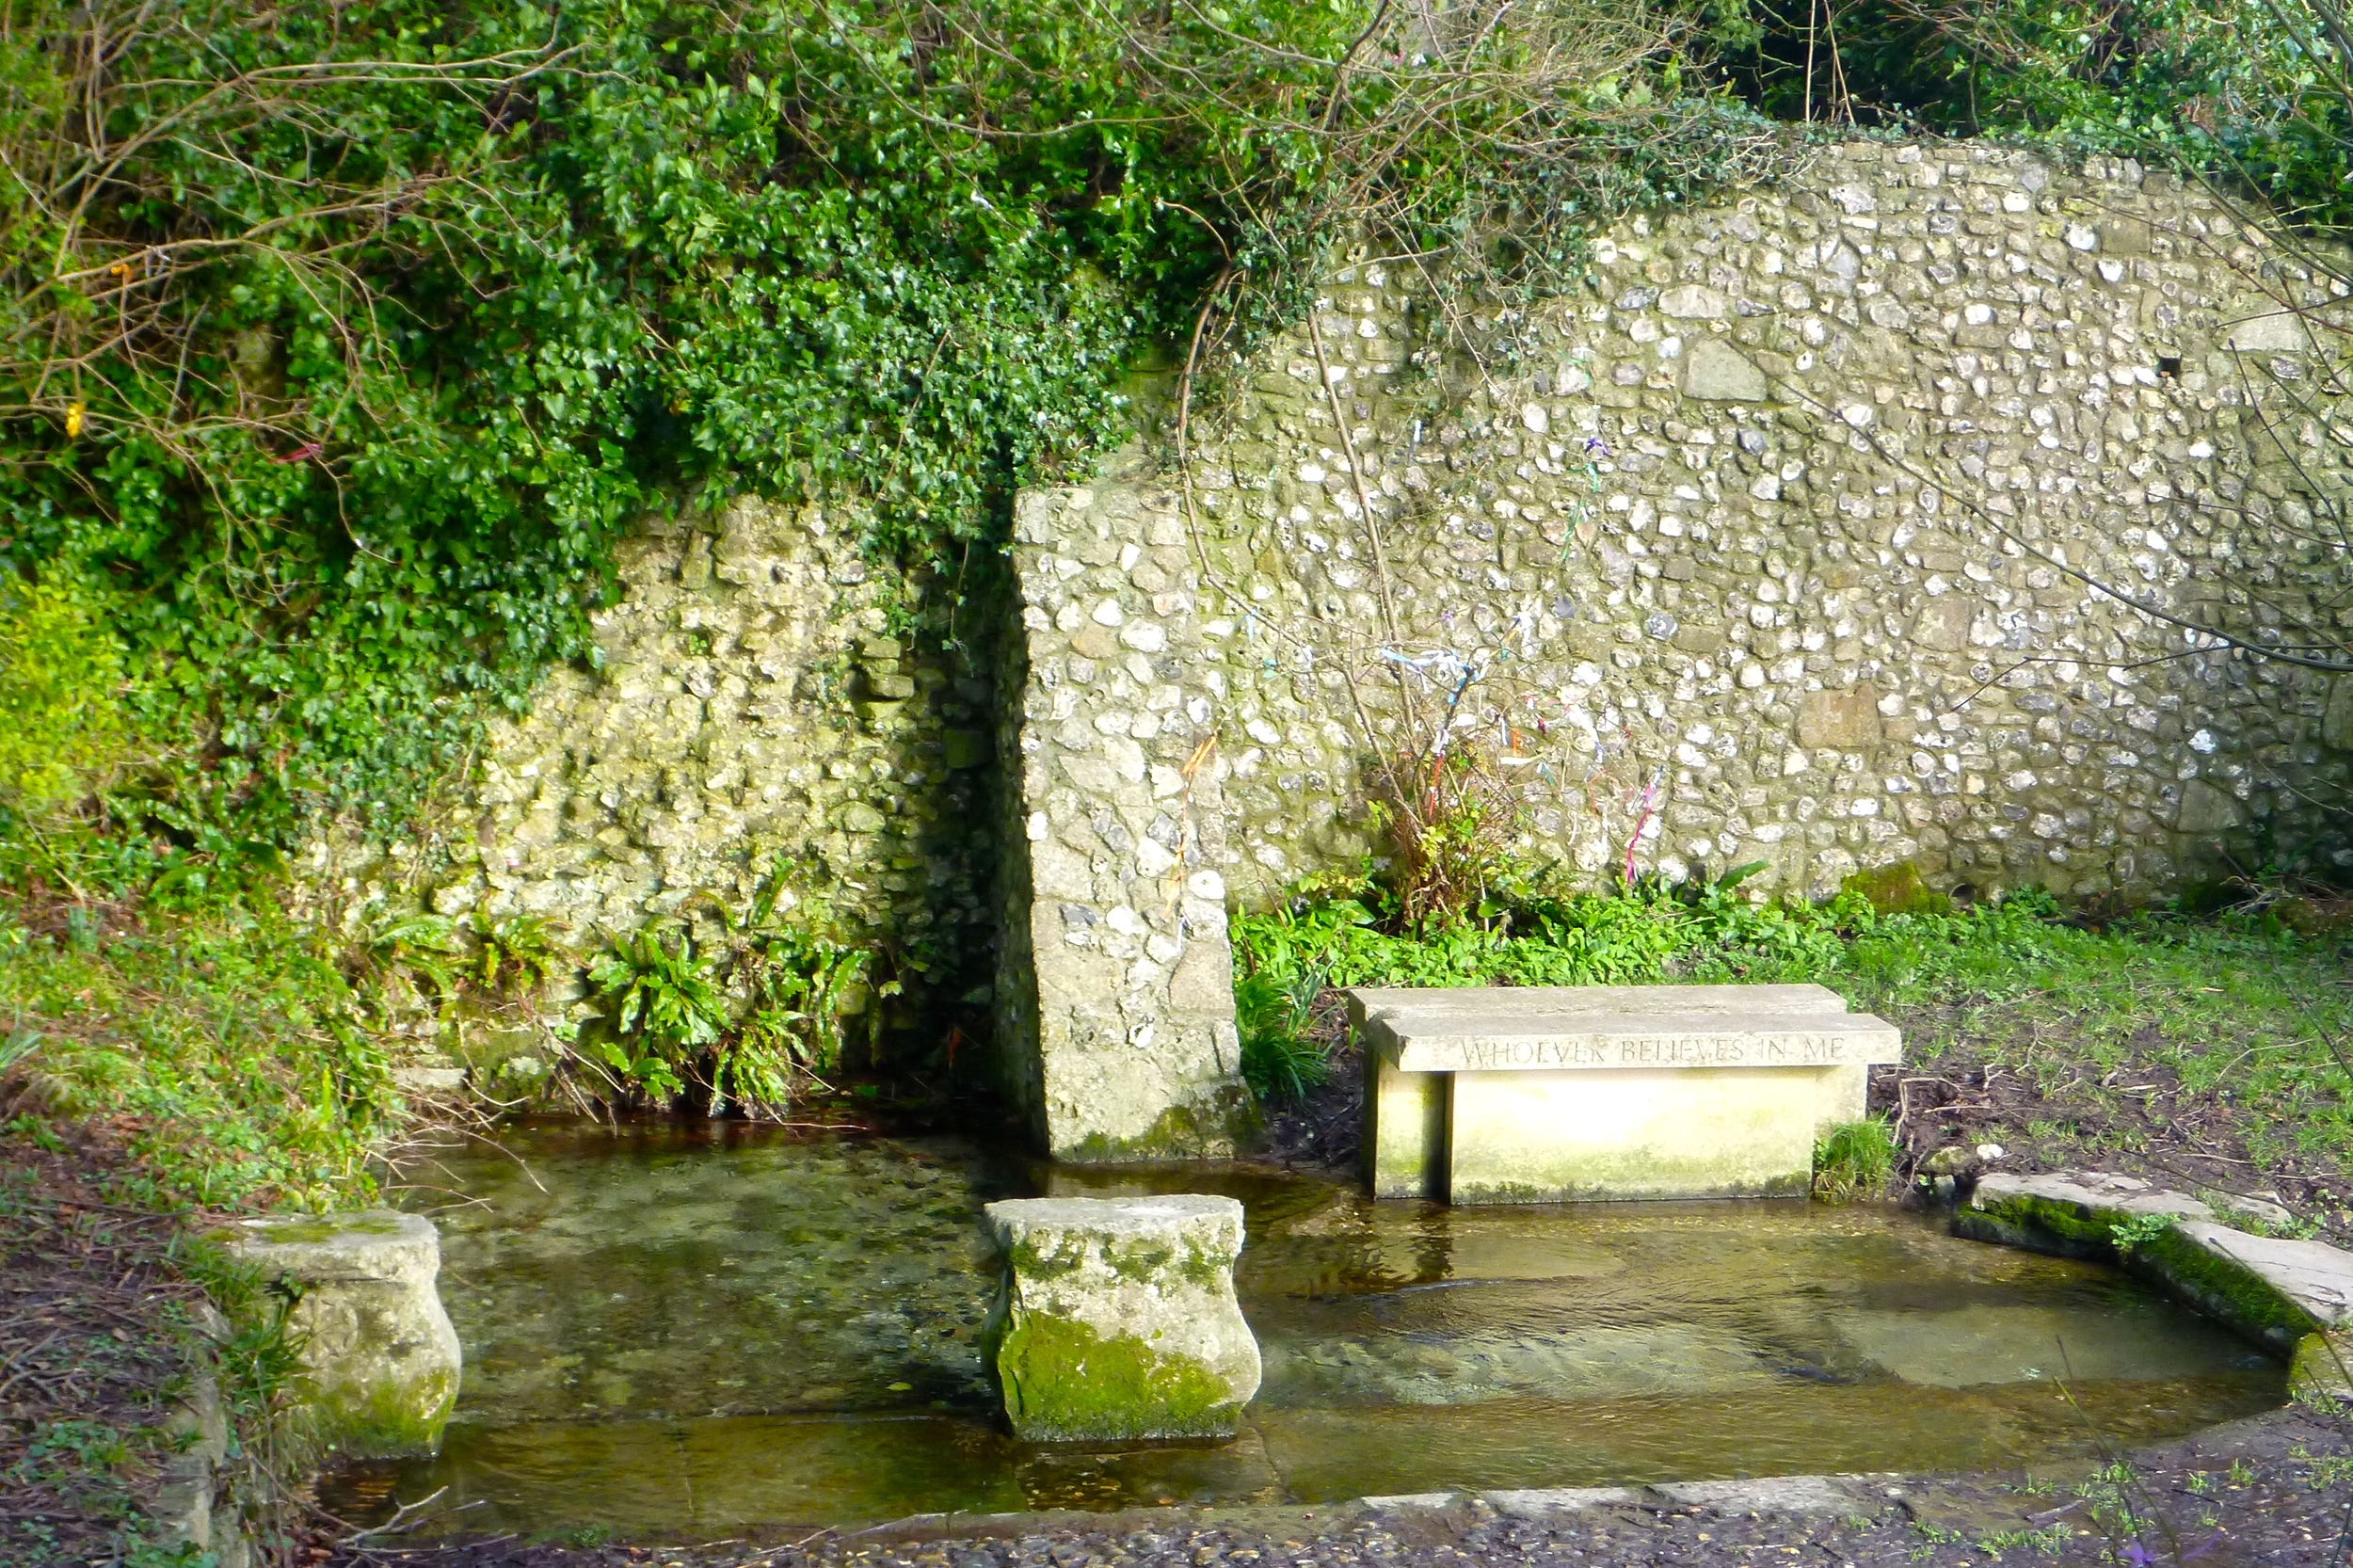 """The bench next to the well has the words """"Whoever Believes in Me"""" carved along it's side. Prayer tree/bush is just behind bench."""